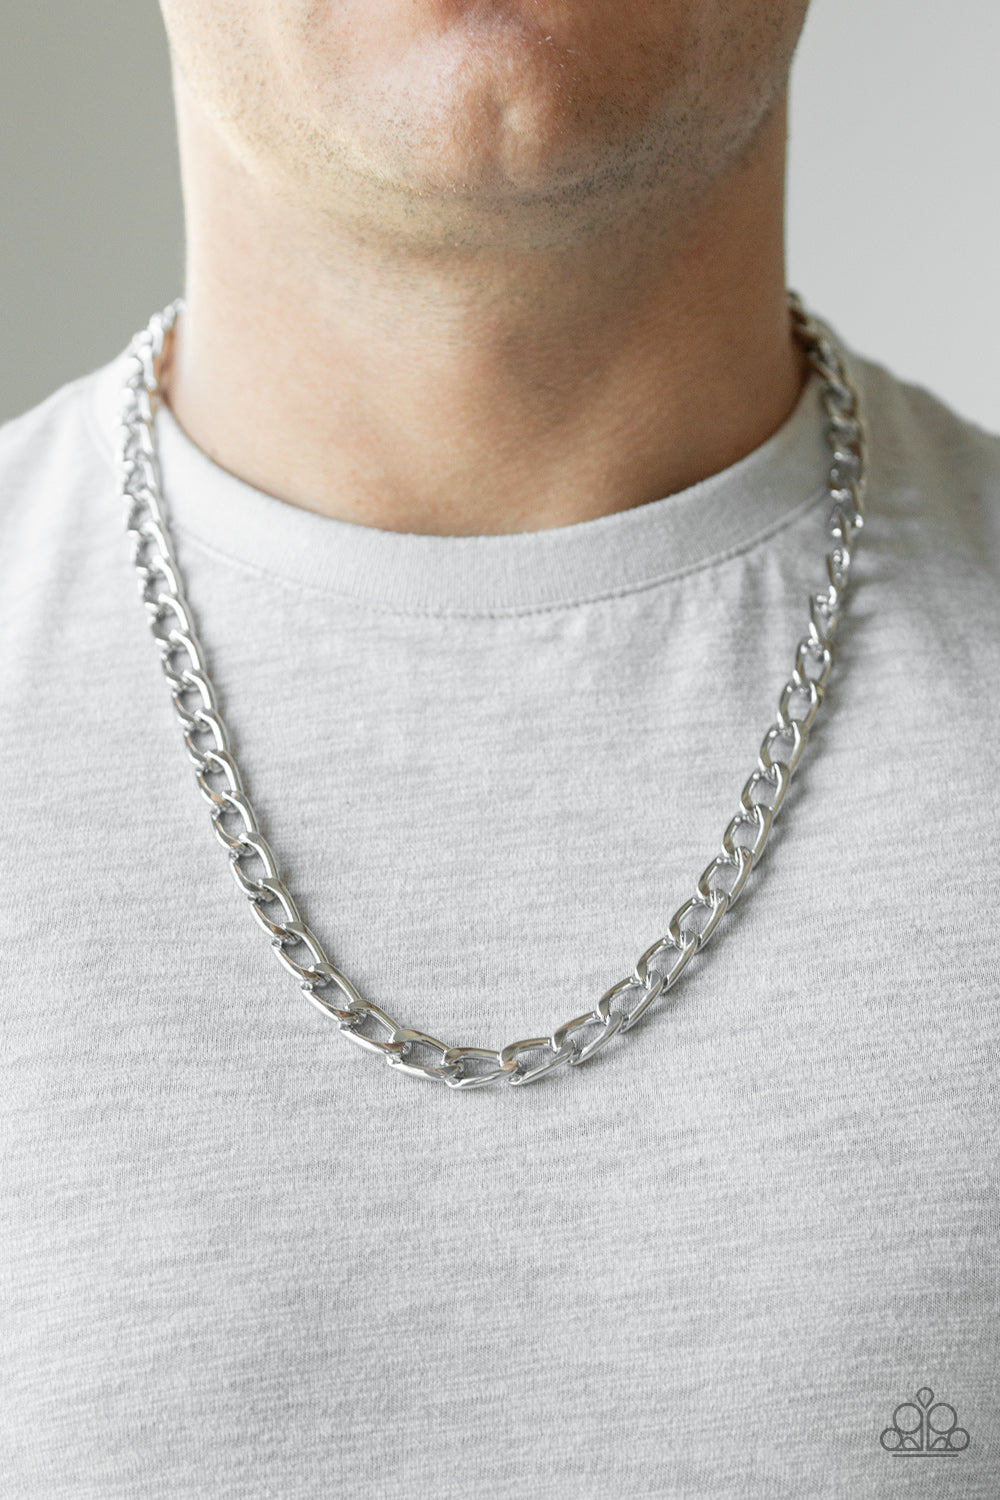 Big Win - Silver Beveled Cable Chain Paparazzi Jewelry Necklace paparazzi accessories jewelry Necklace Men